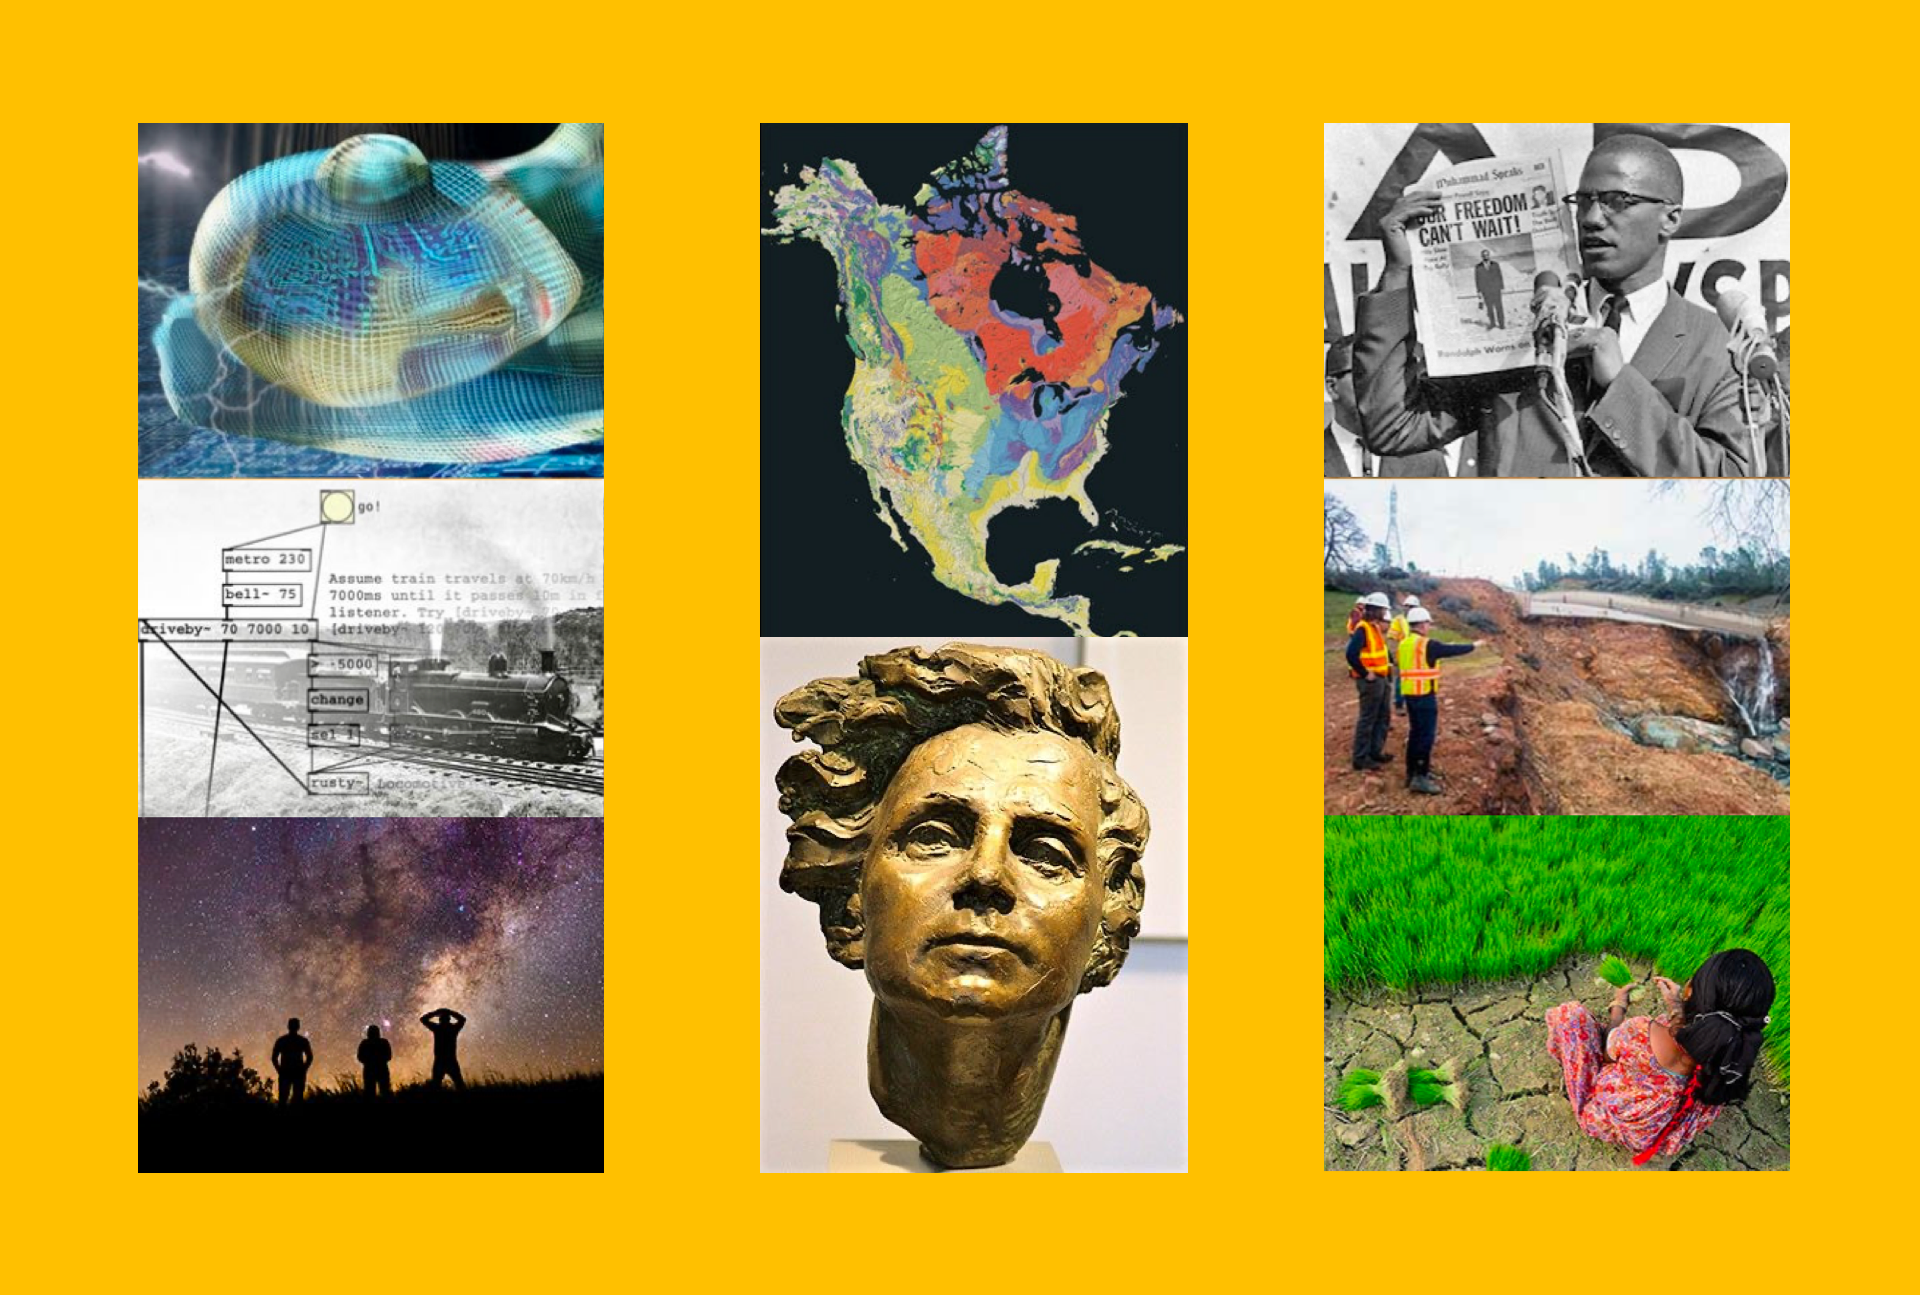 A collage showing images representing courses across various disciplines